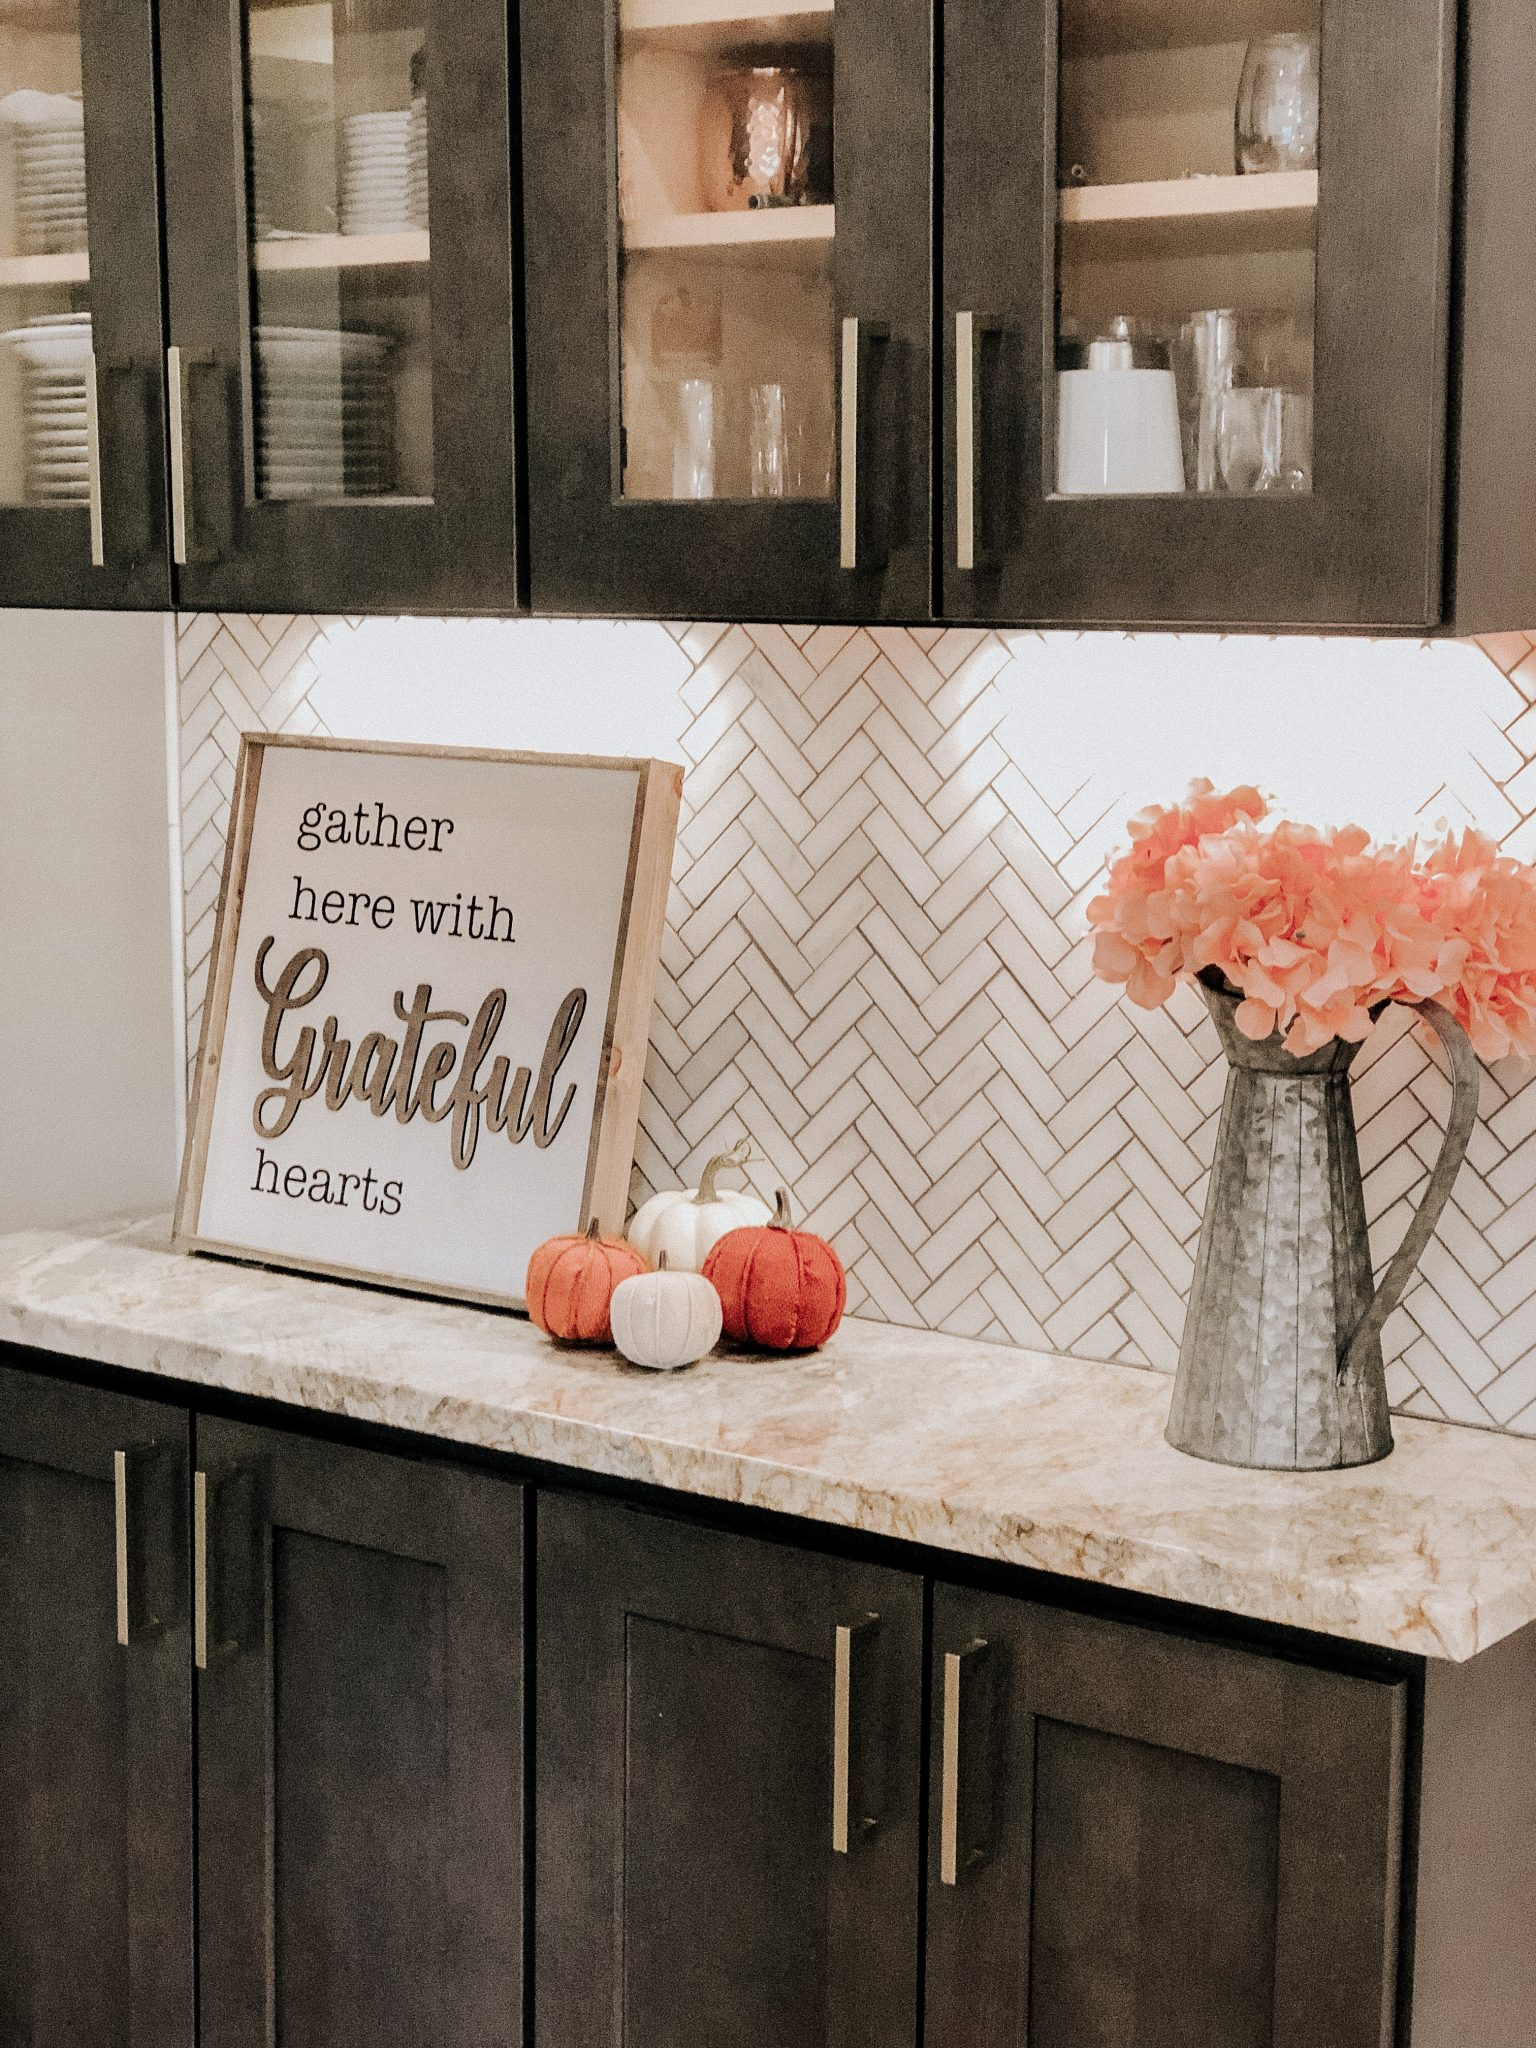 Fall Decor Home Tour | Daily Splendor Life and Style Blog | fall kitchen decor #pumpkins #farmhousekitchen #fallkitchendecor #cozyfall #fallkitchen